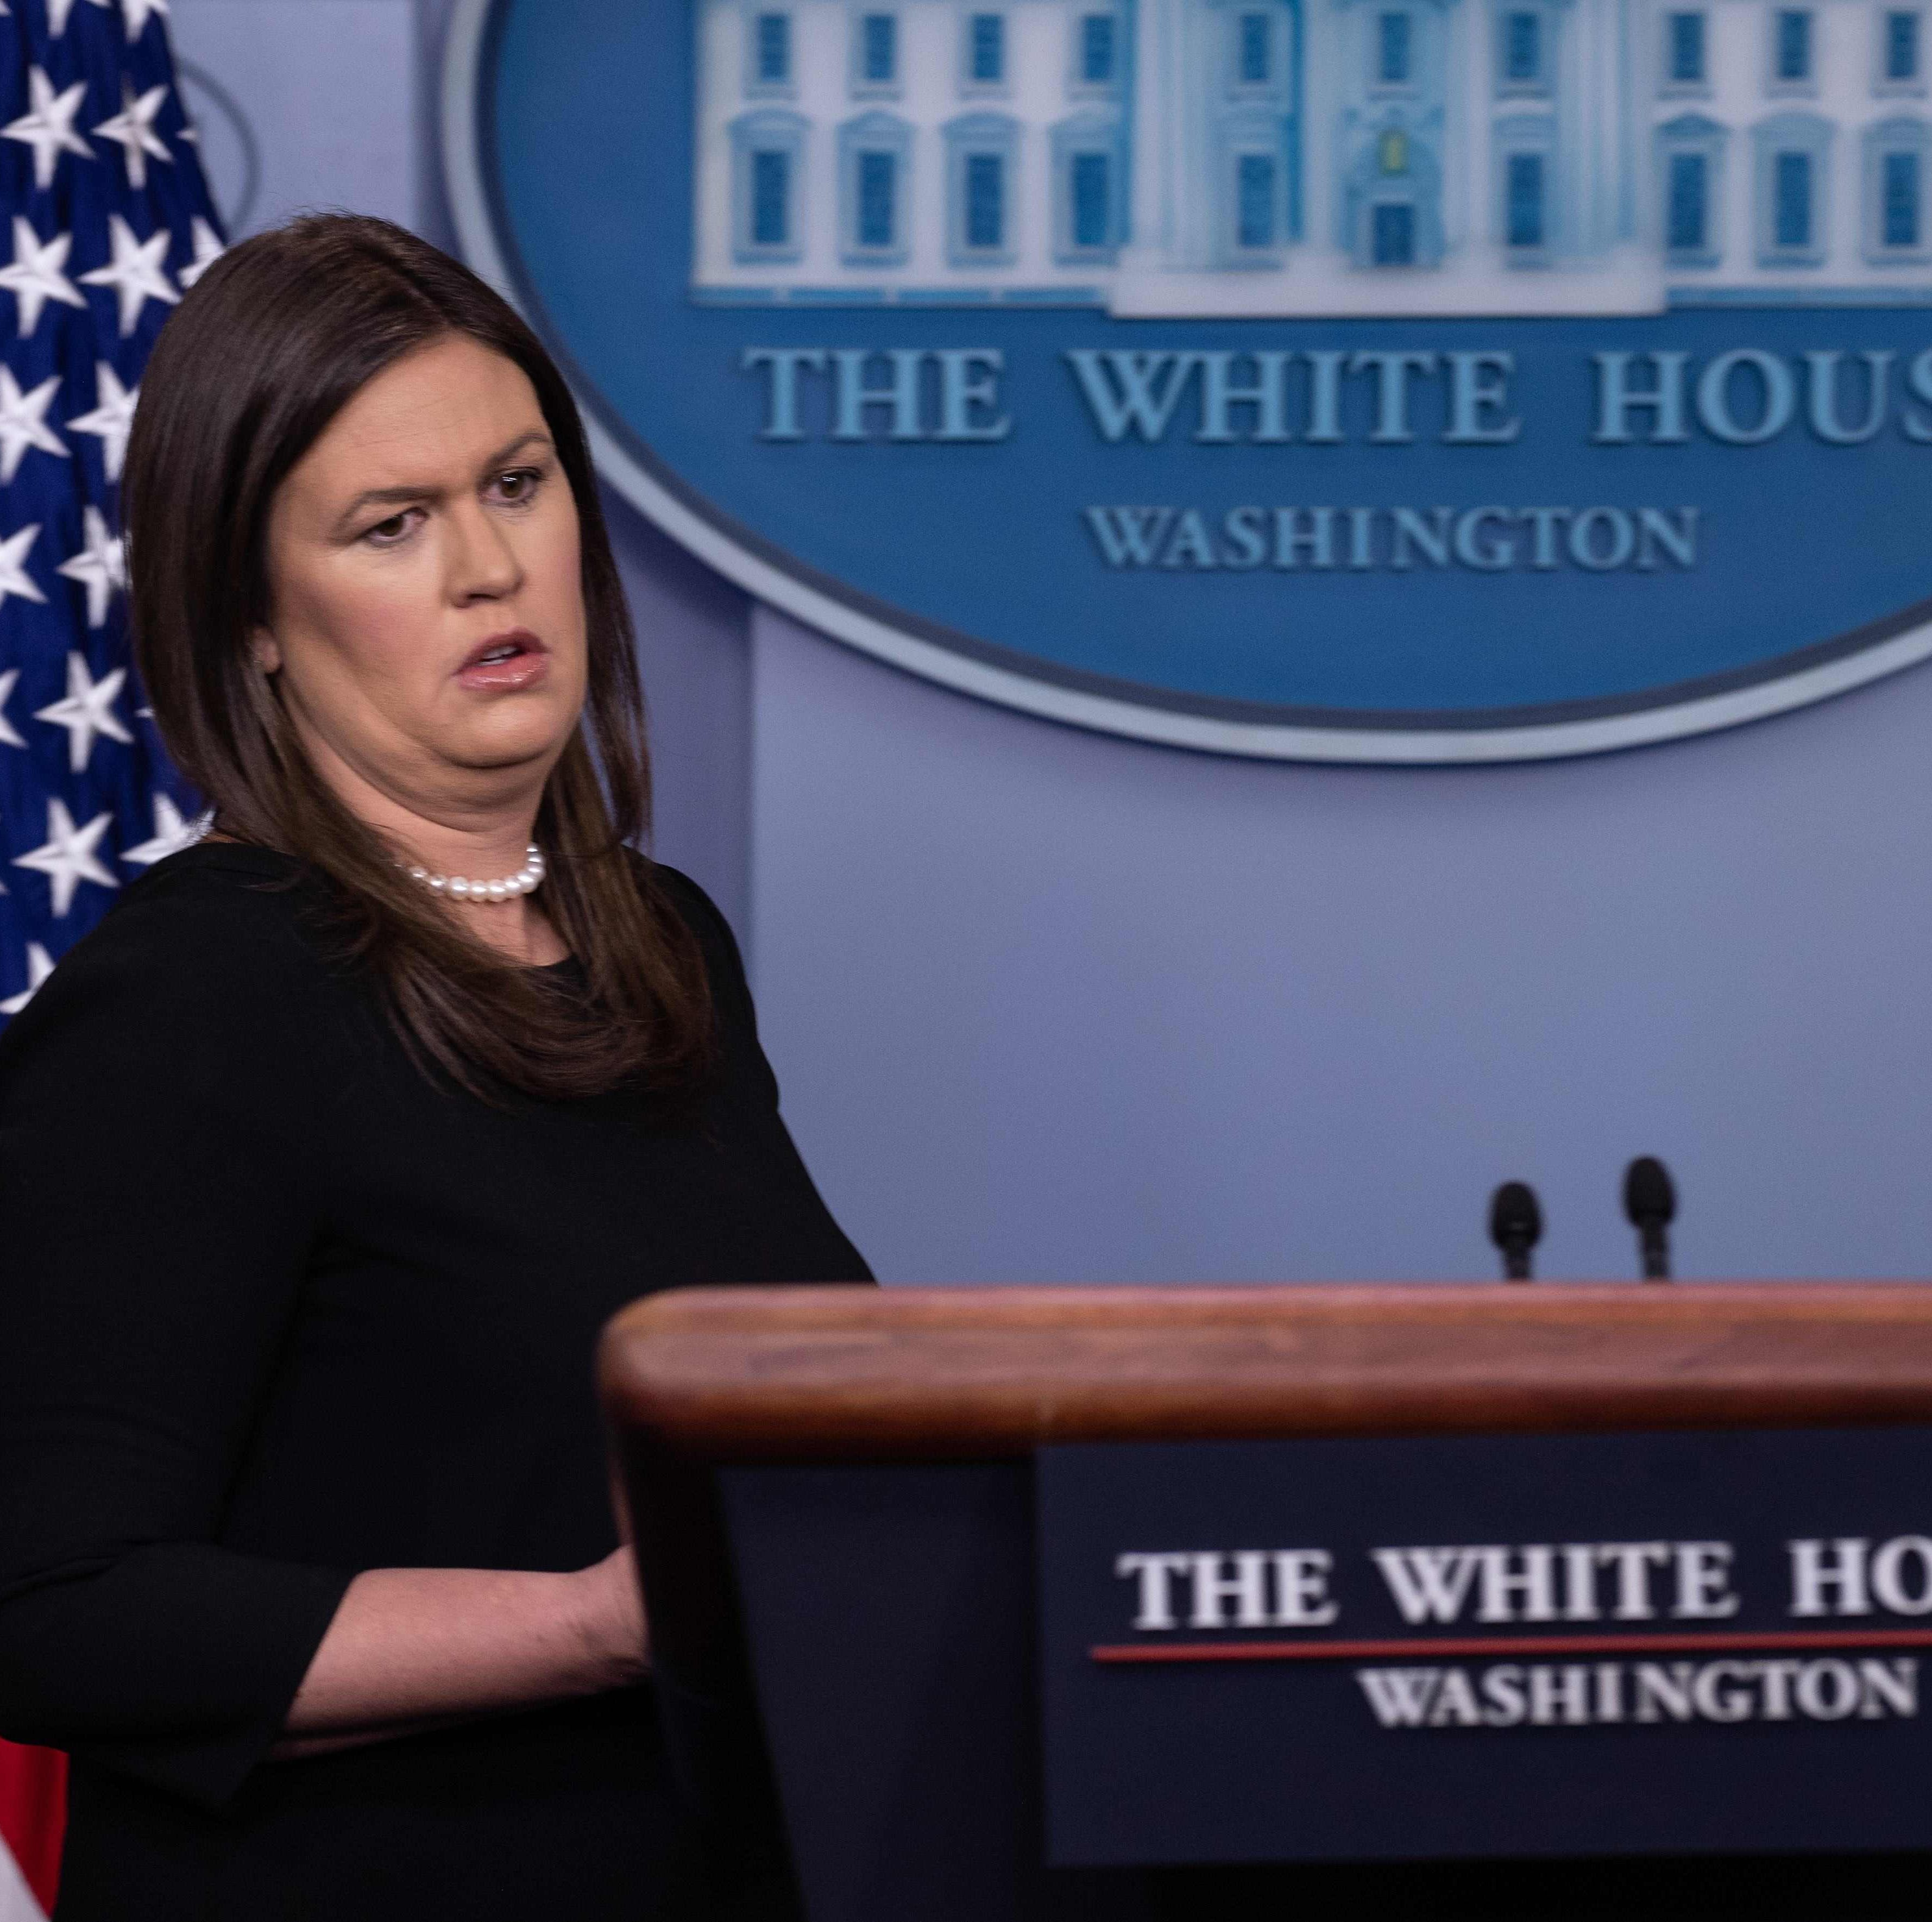 """White House Press Secretary Sarah Huckabee Sanders arrives for the press briefing at the White House in Washington, DC, on August 2, 2018. The US government on Thursday accused Russia of carrying out a """"pervasive"""" campaign to influence public opinion and elections, in a public warning just months before crucial legislative elections. """"We continue to see a pervasive messaging campaign from Russia to try and weaken and divide the United States,"""" said Dan Coats, the director of national intelligence. / AFP PHOTO / NICHOLAS KAMMNICHOLAS KAMM/AFP/Getty Images ORG XMIT: 330 ORIG FILE ID: AFP_1835CG"""